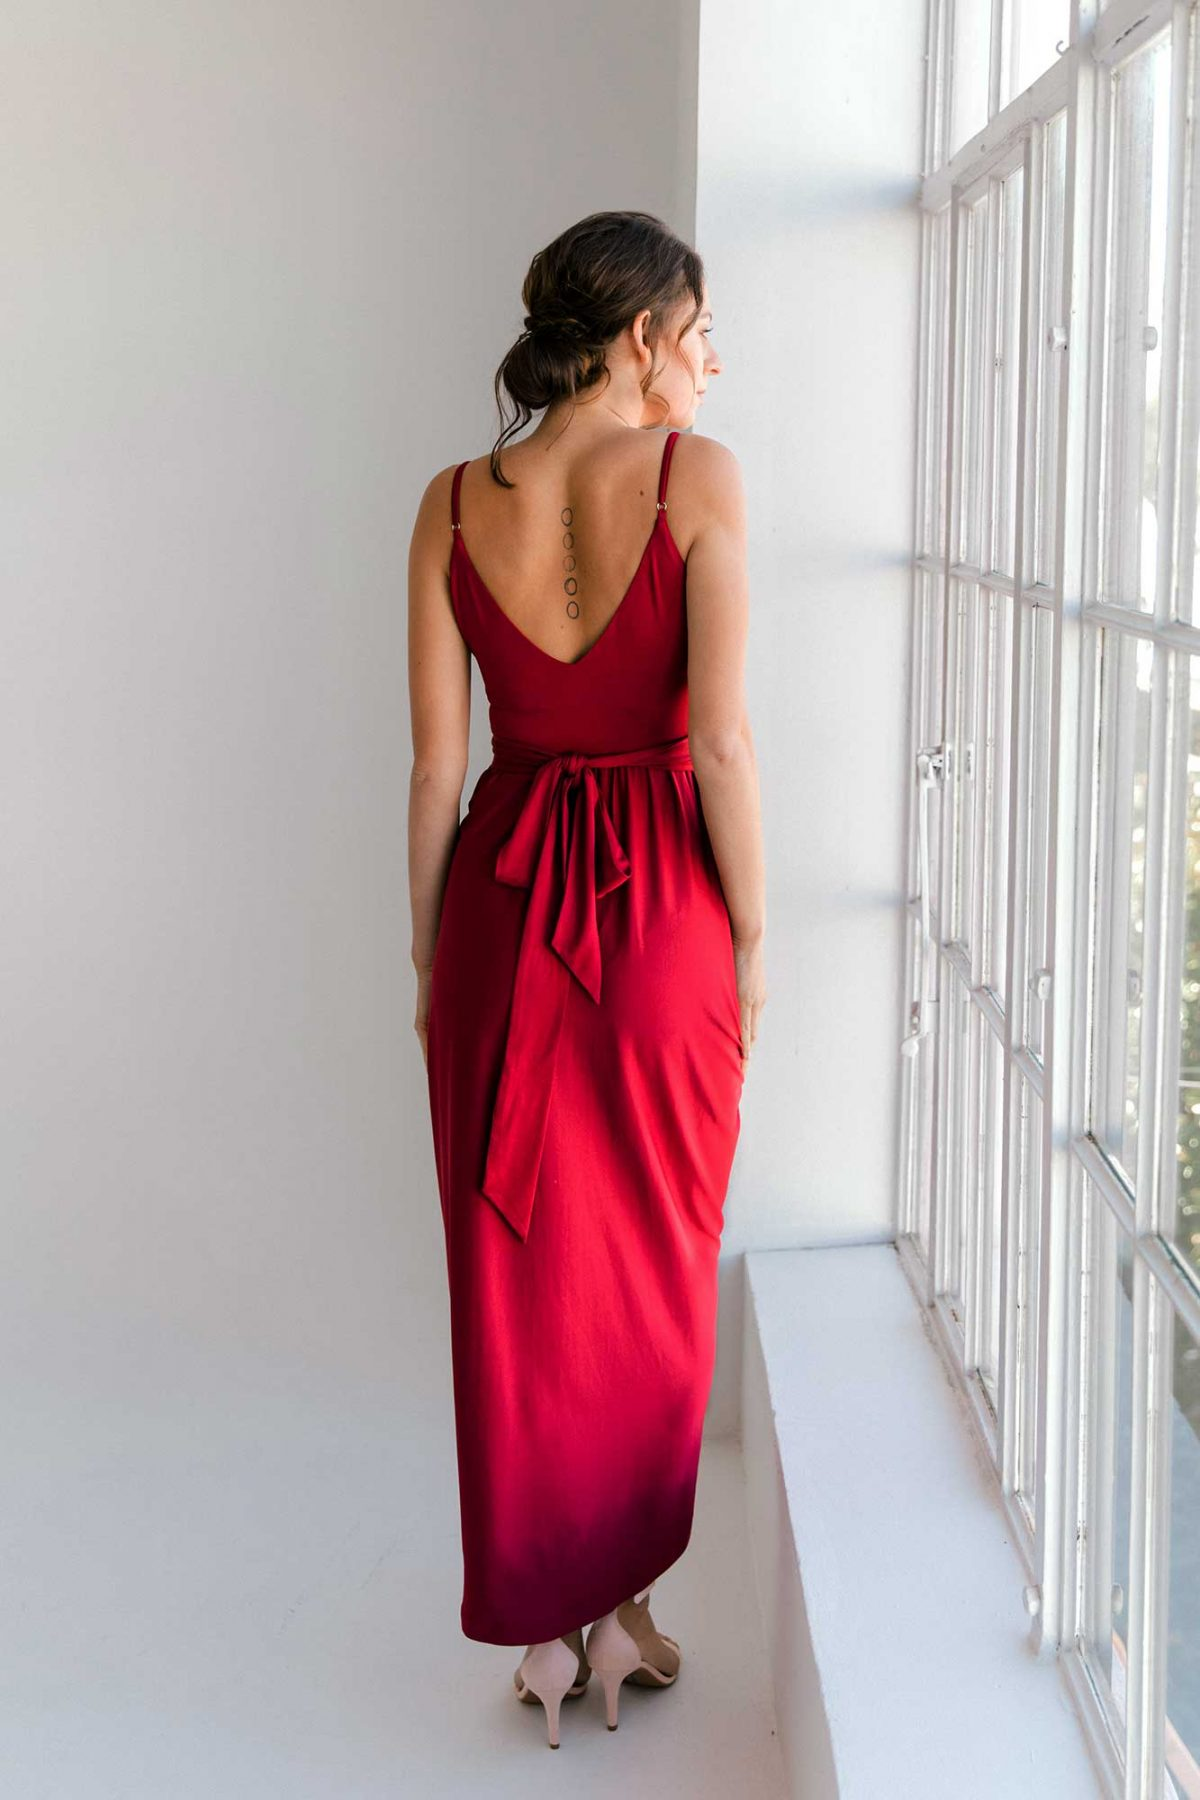 Claret high-low dress in claret colour back view